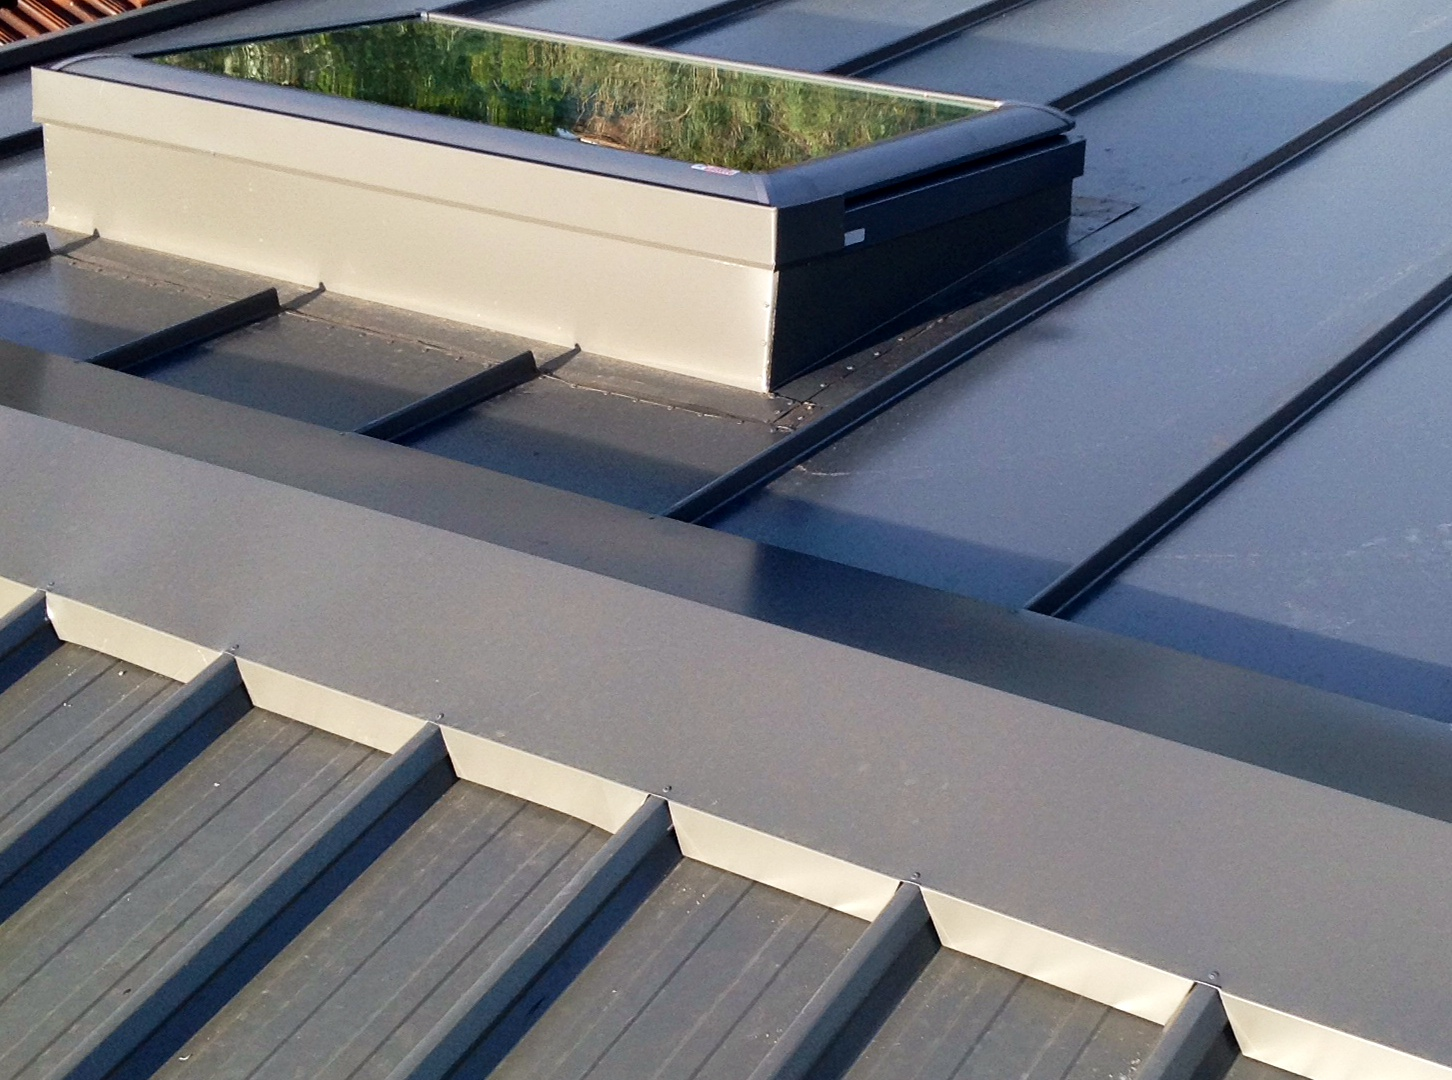 velux skylights melbourne skylight installation tips roofrite melbourne - Metal Roof Flashing